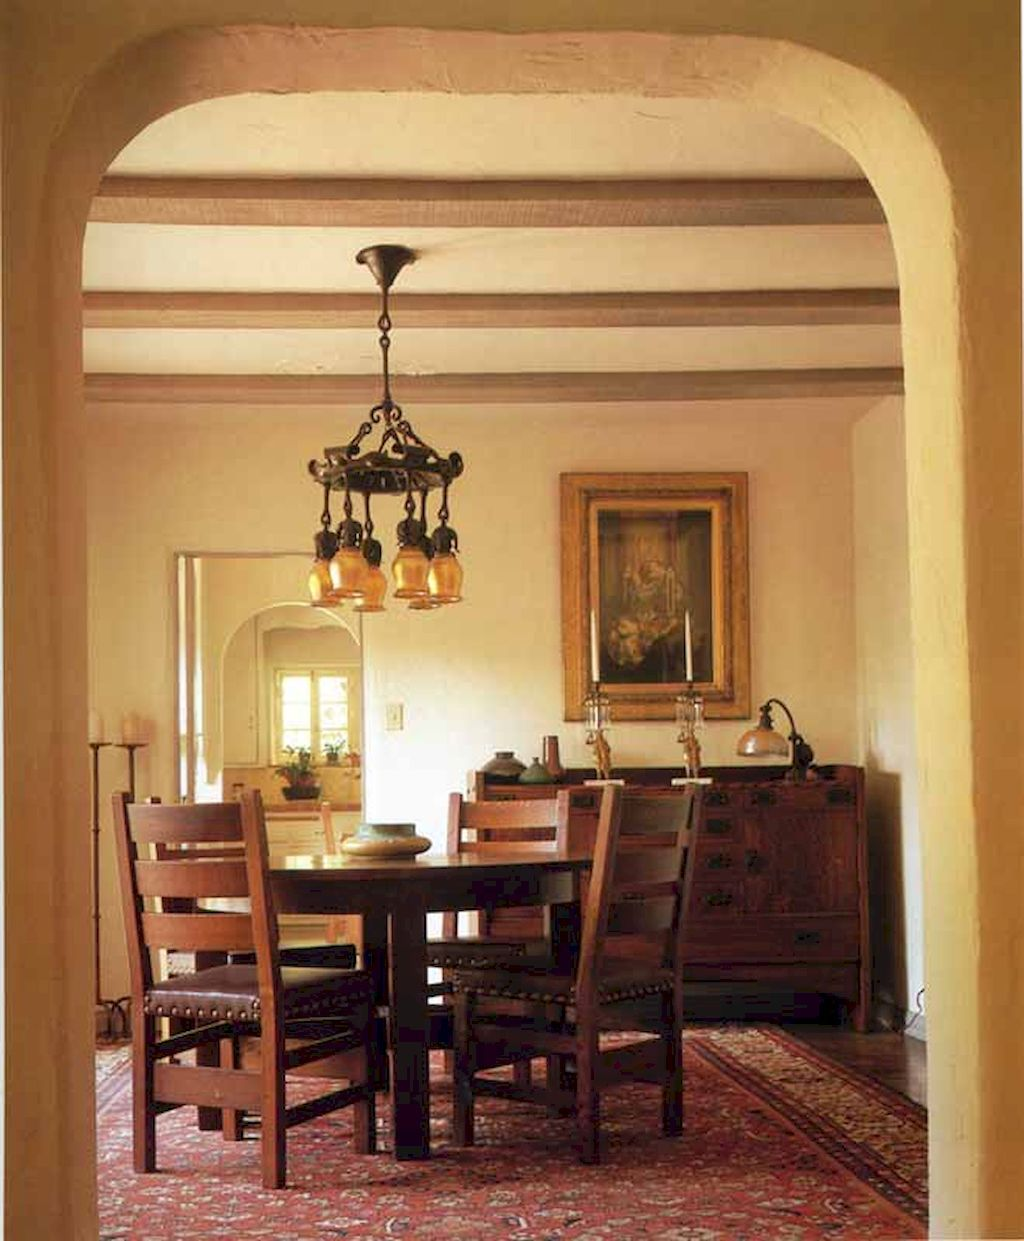 Victorian Dining Room Decorating Ideas: 55 Vintage Victorian Dining Room Decor Ideas